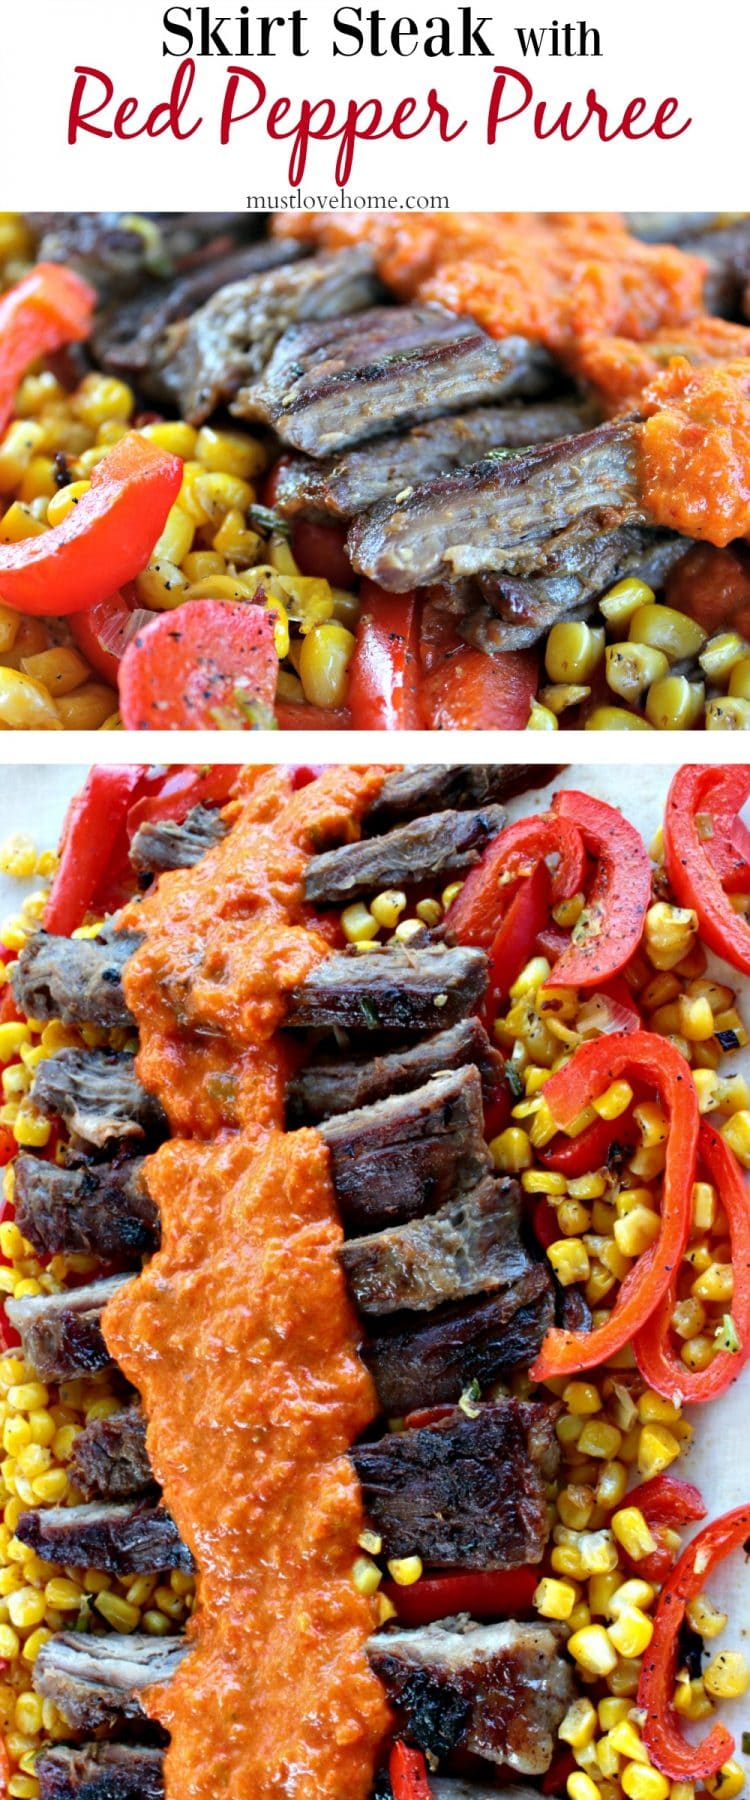 Skirt Steak with Red Pepper Puree is marinated then pan fried skirt steak drenched in a smooth and flavorful red pepper puree. Served with pan fried peppers, corn and red onion.